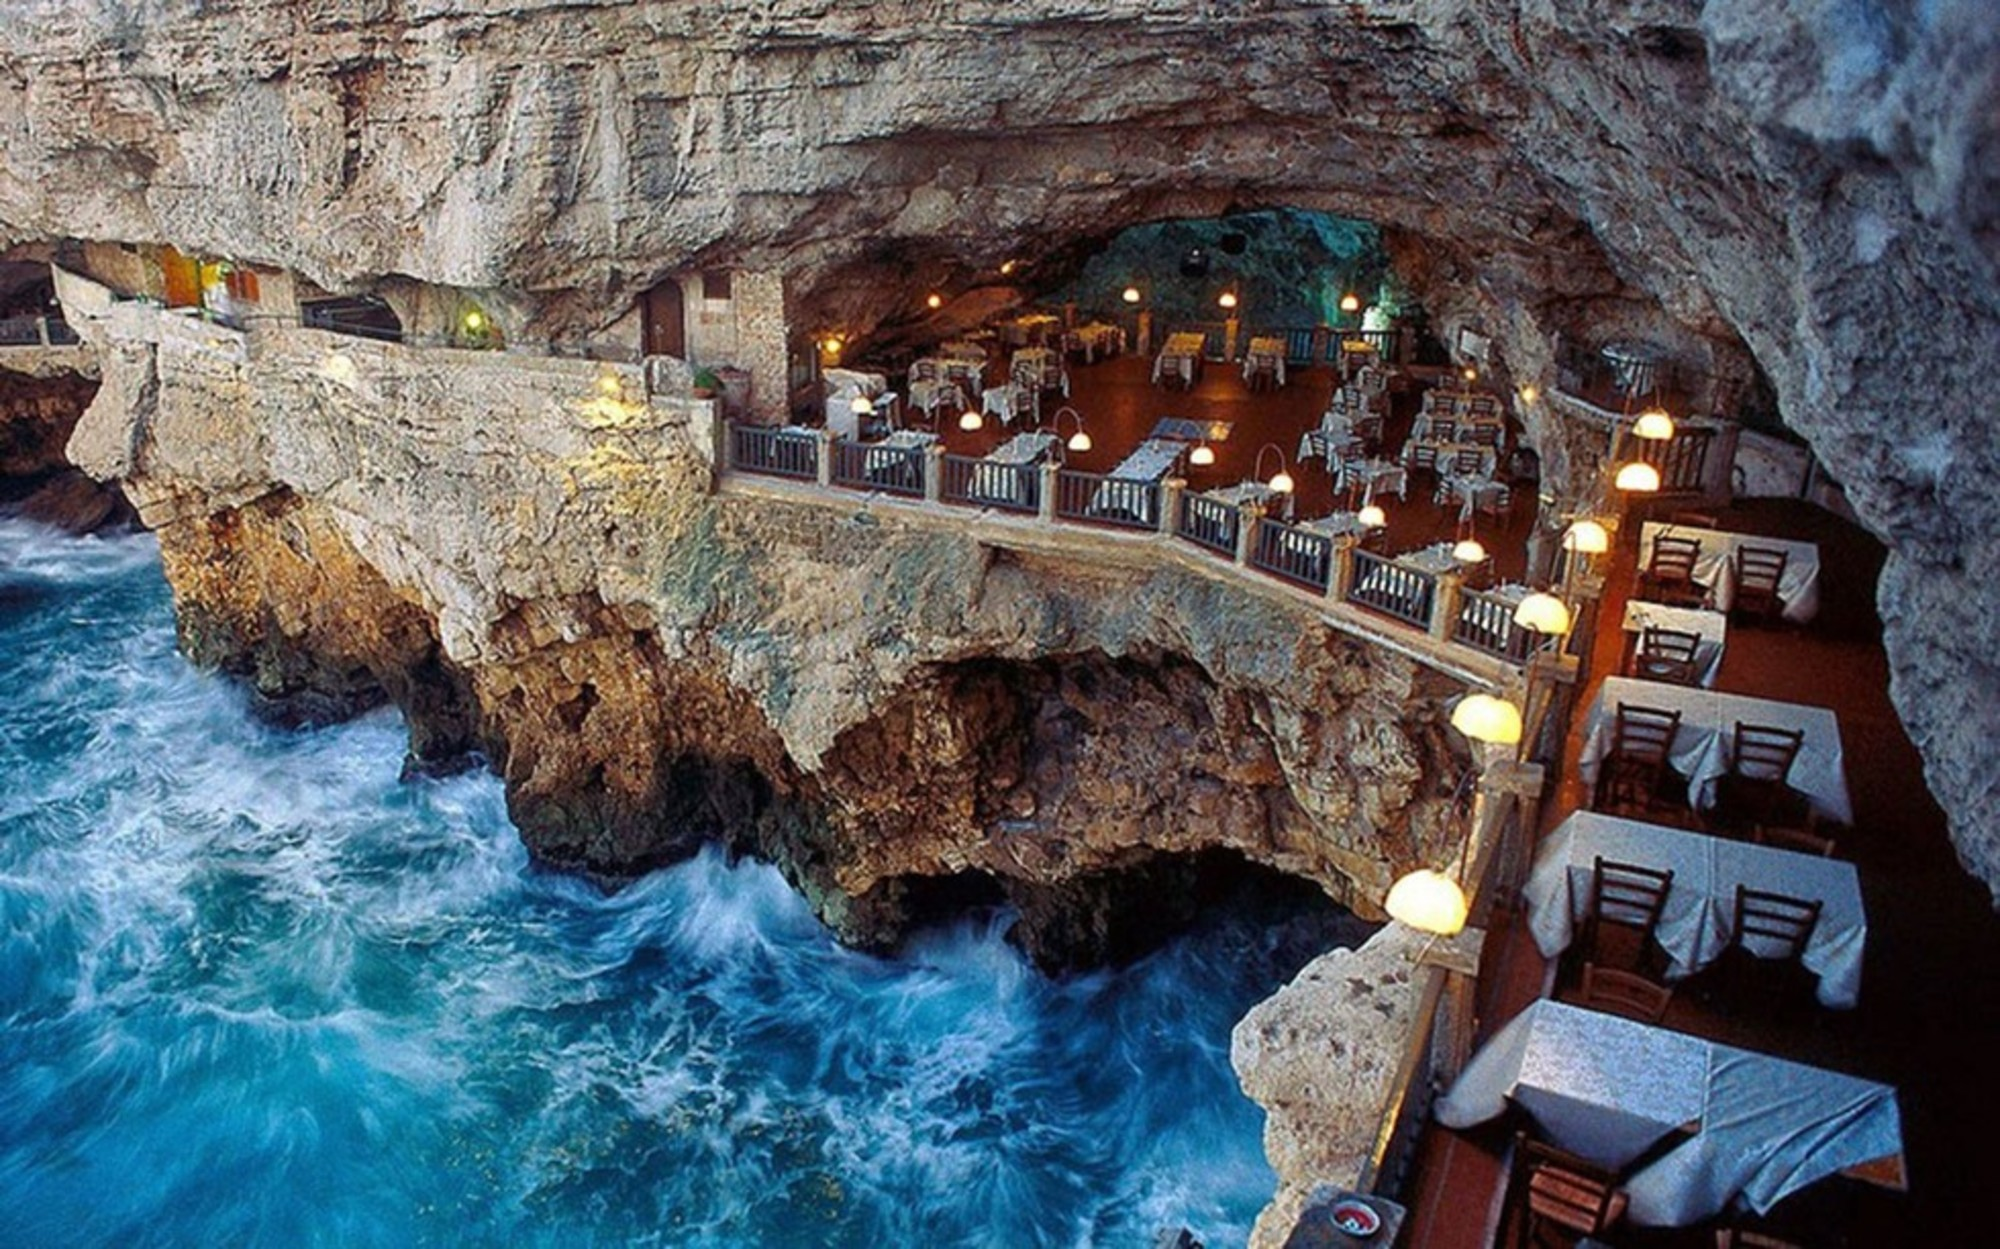 Luxury restaurants: an unforgettable experience inside a cave restaurants for valentine's day The Most Romantic Restaurants for Valentine's Day Luxury restaurants an unforgettable experience inside a cave restaurants for valentine's day The Most Romantic Restaurants for Valentine's Day Luxury restaurants an unforgettable experience inside a cave